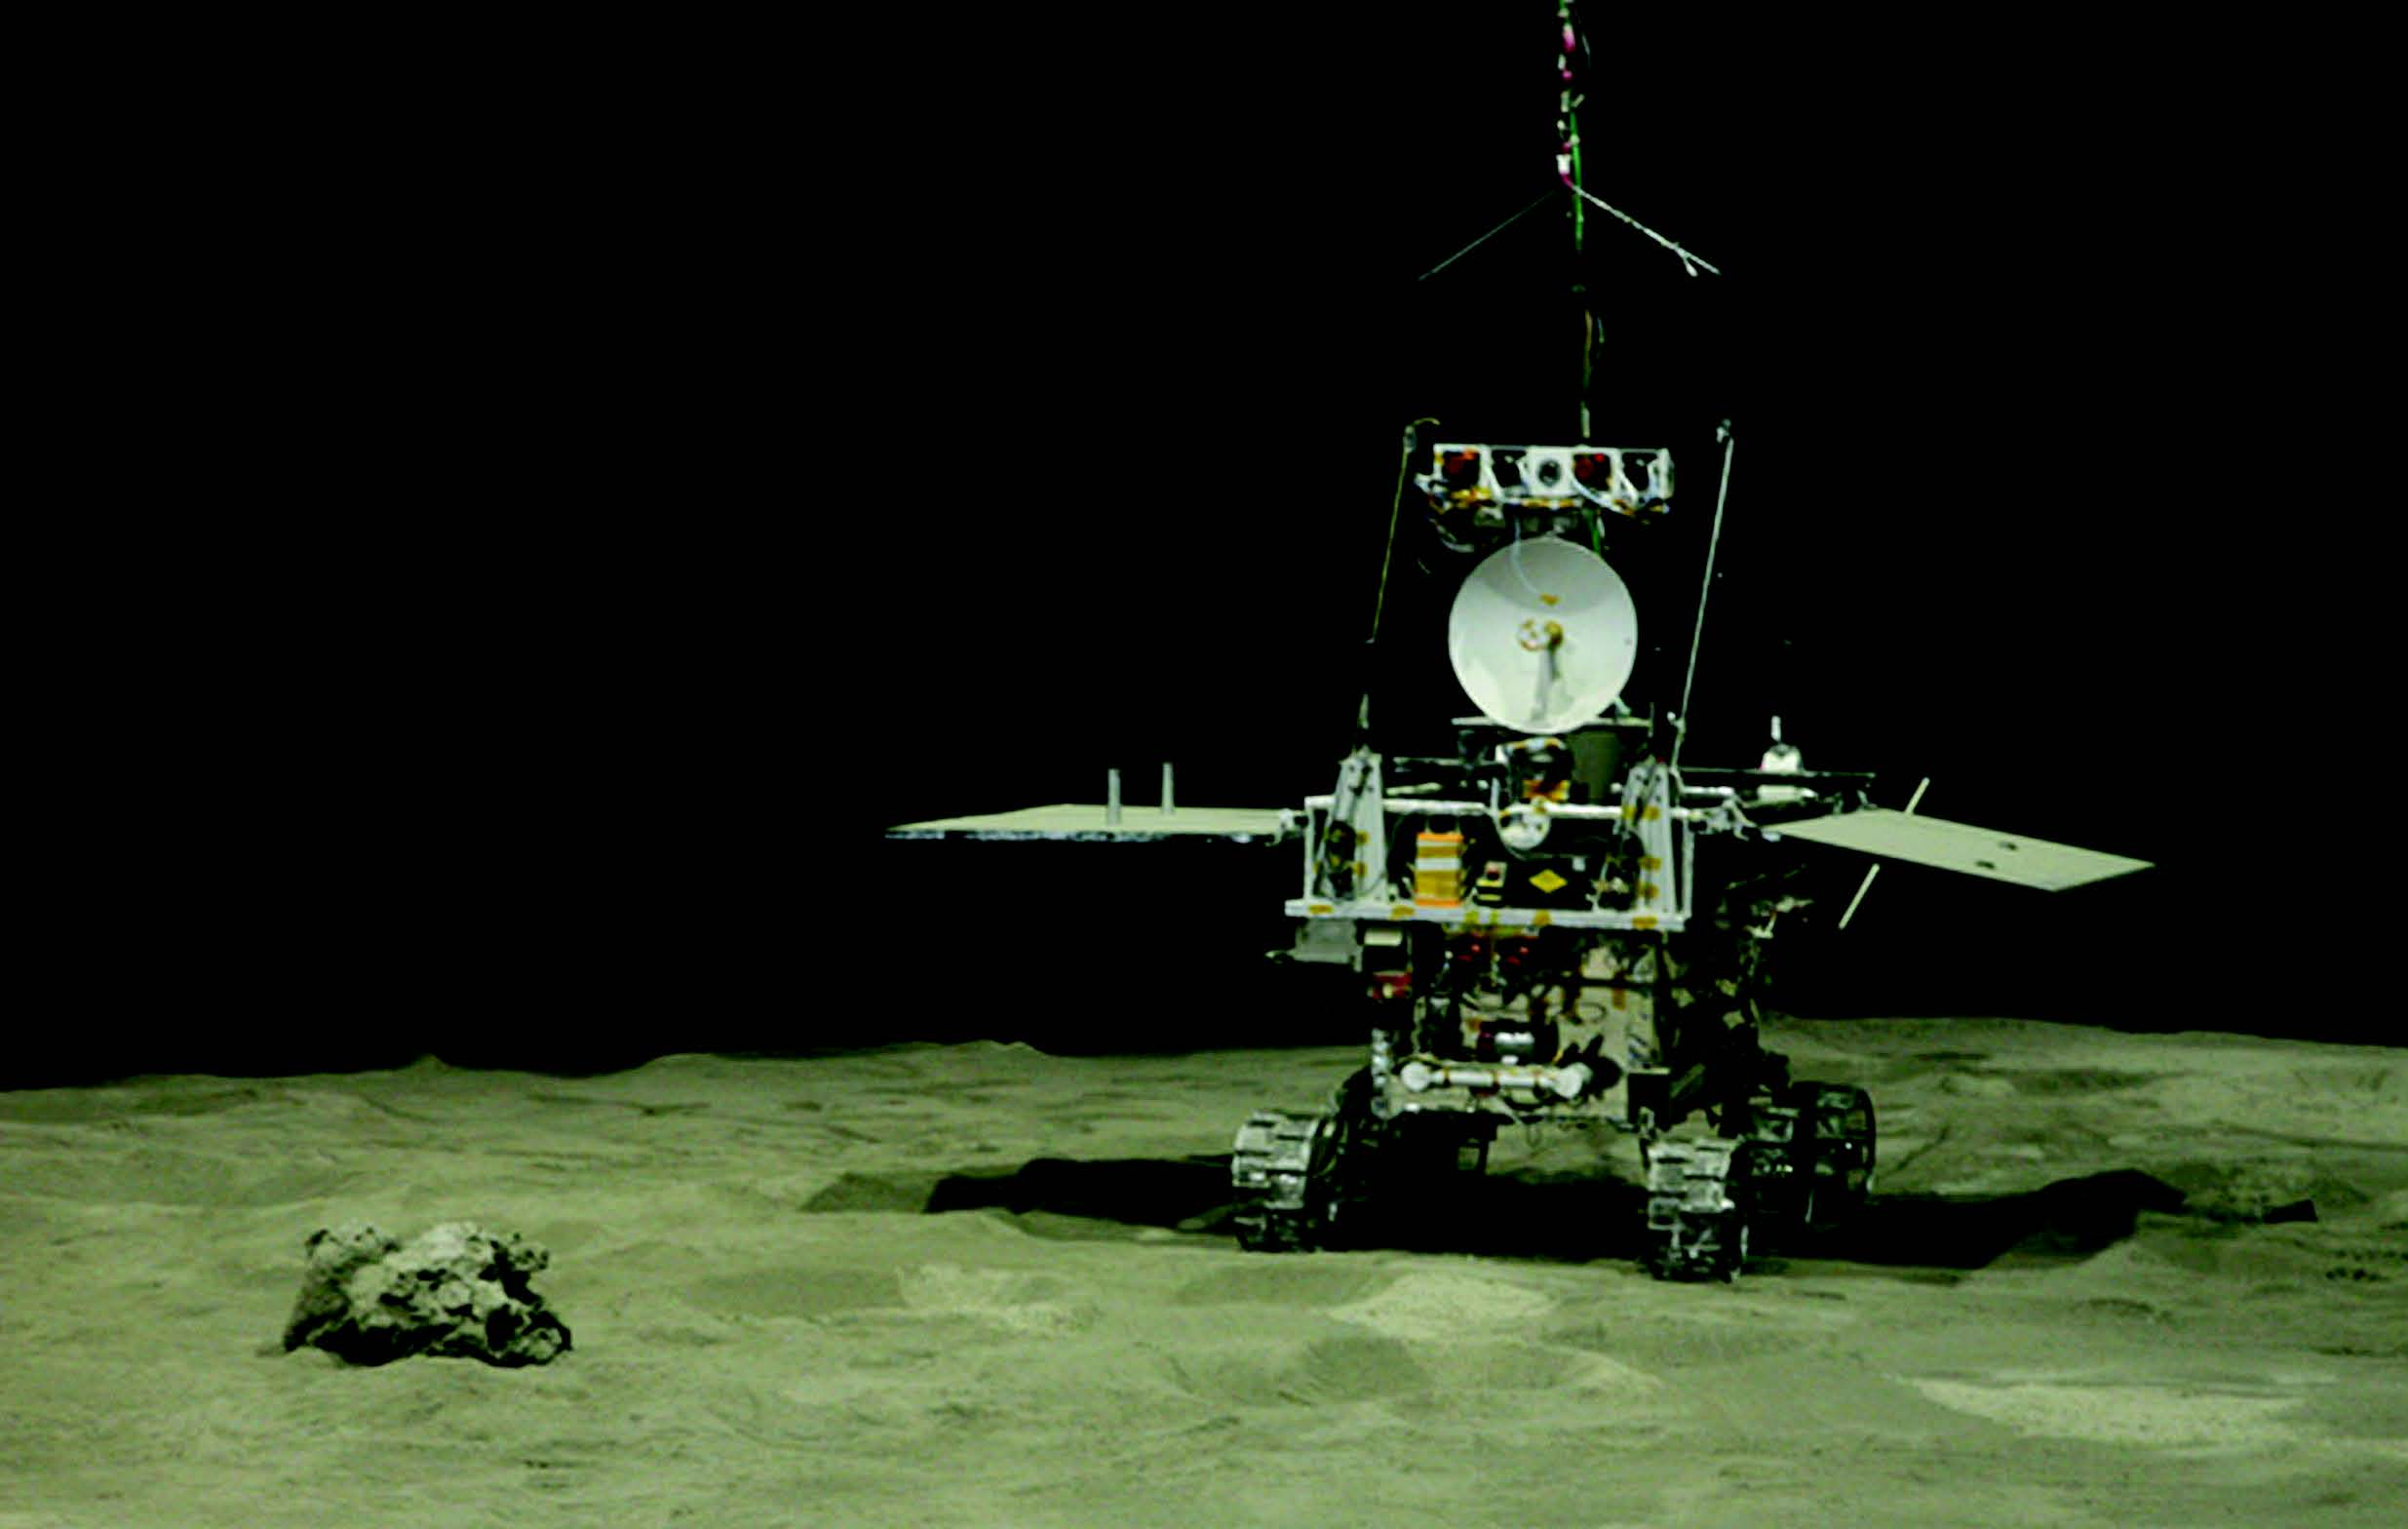 chinese moon rover - HD2470×1568